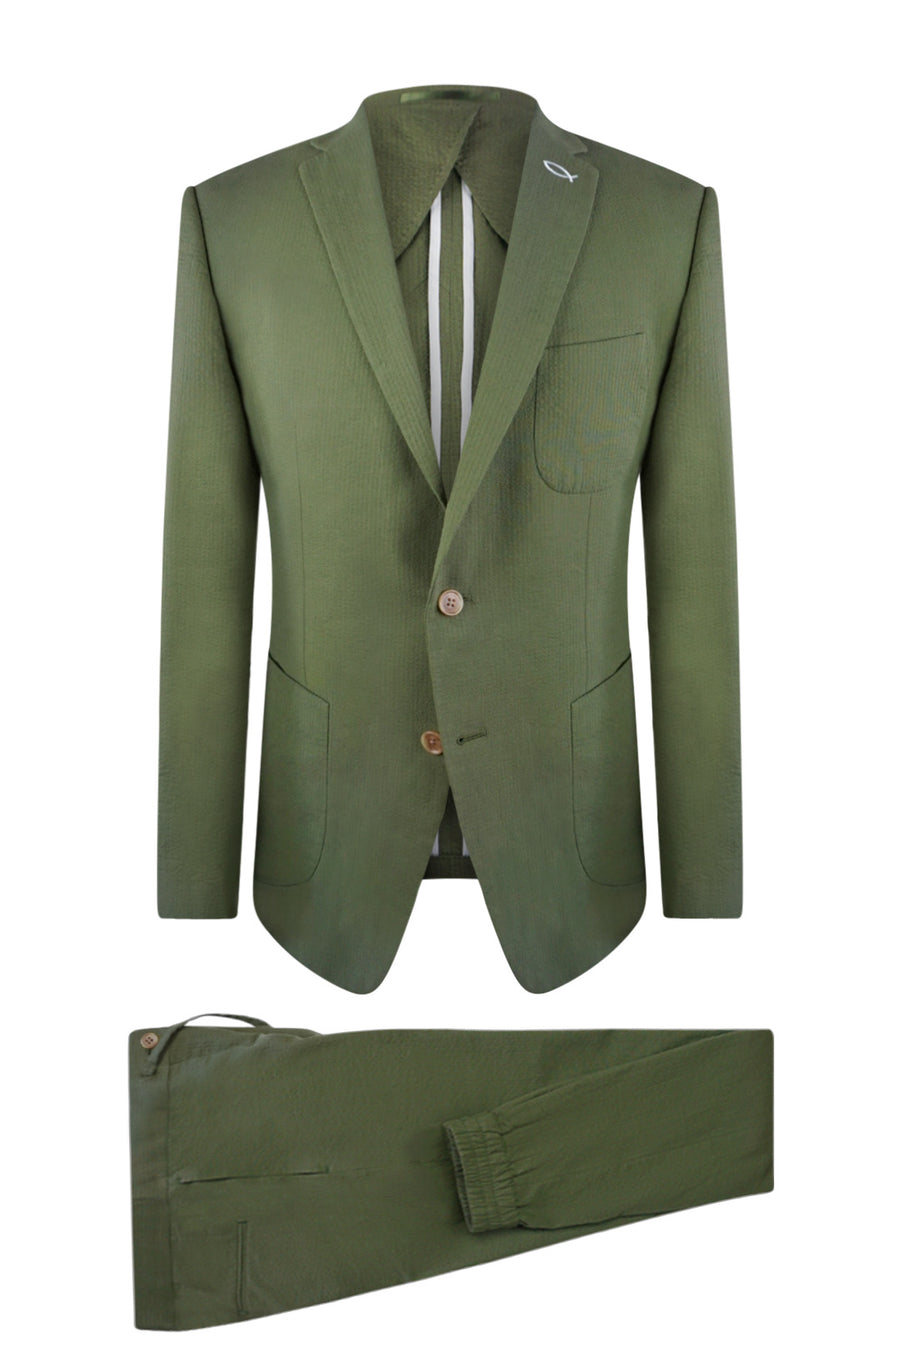 Caiman Green Seersucker Suit Jacket